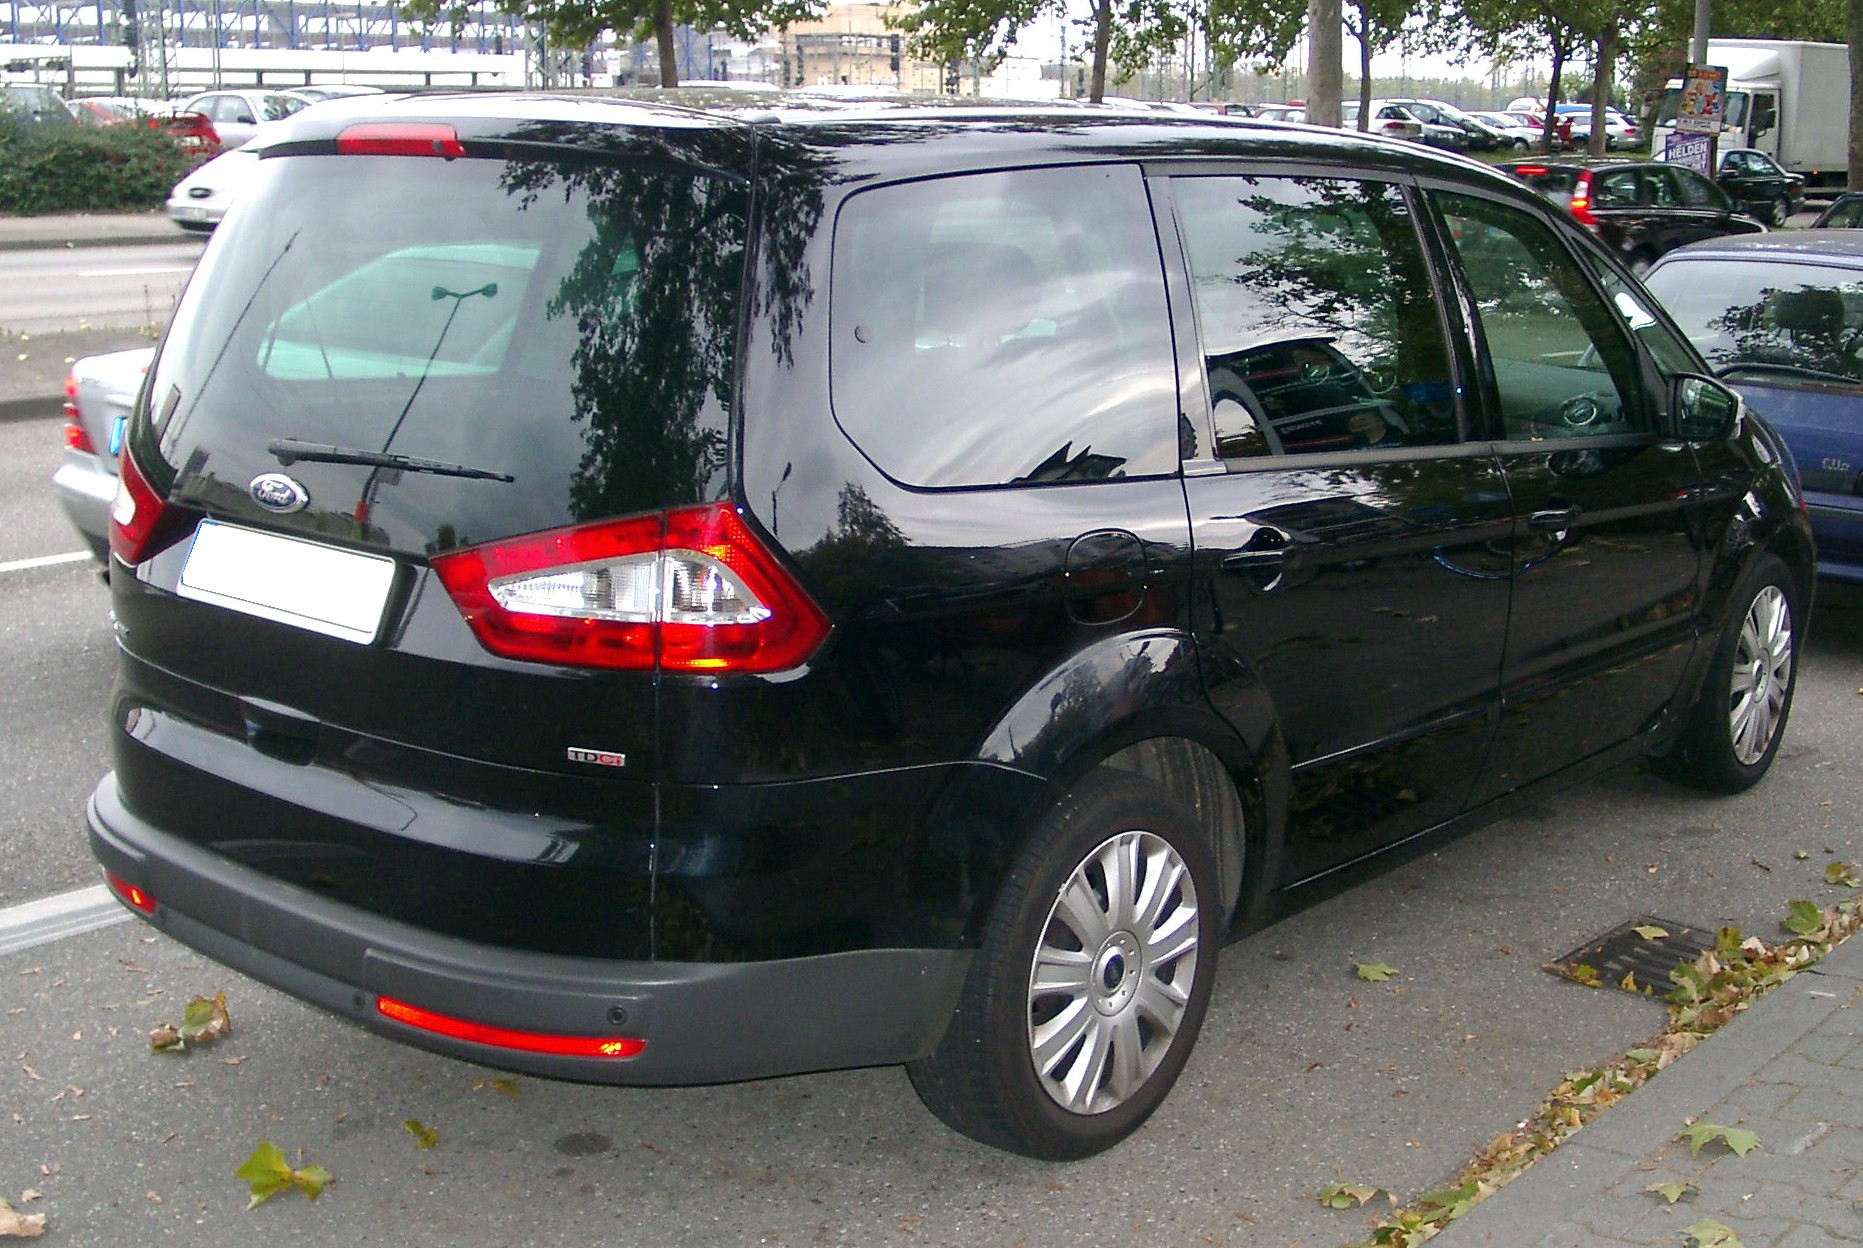 file ford s max rear wikimedia commons. Black Bedroom Furniture Sets. Home Design Ideas